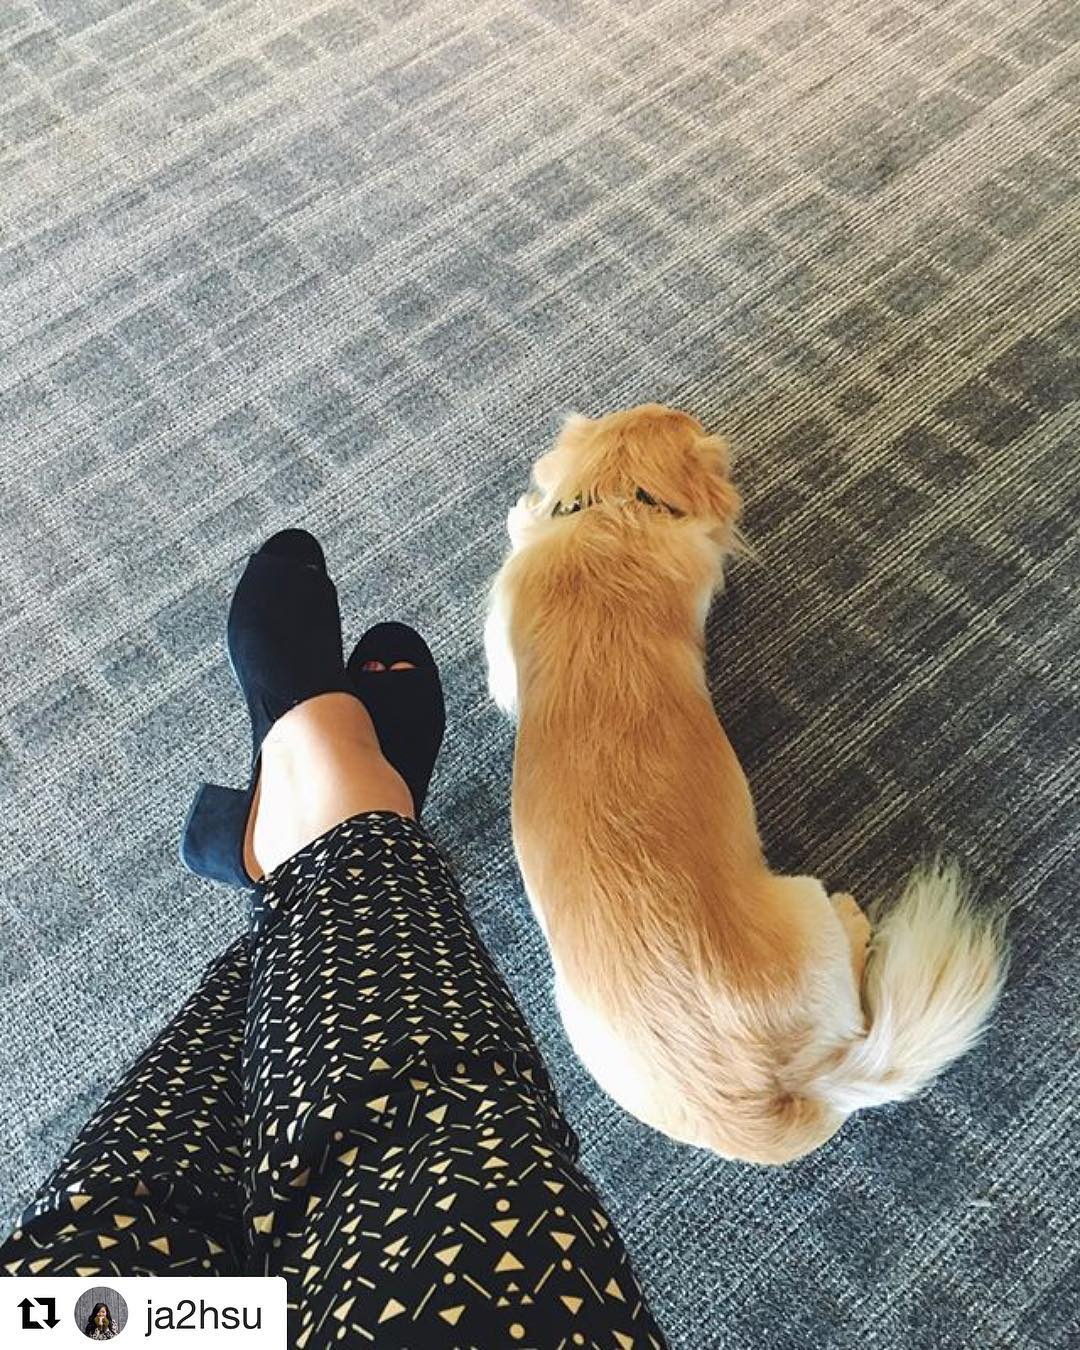 If only we could all lay down in meetings…#dogsoftroika #wednesday